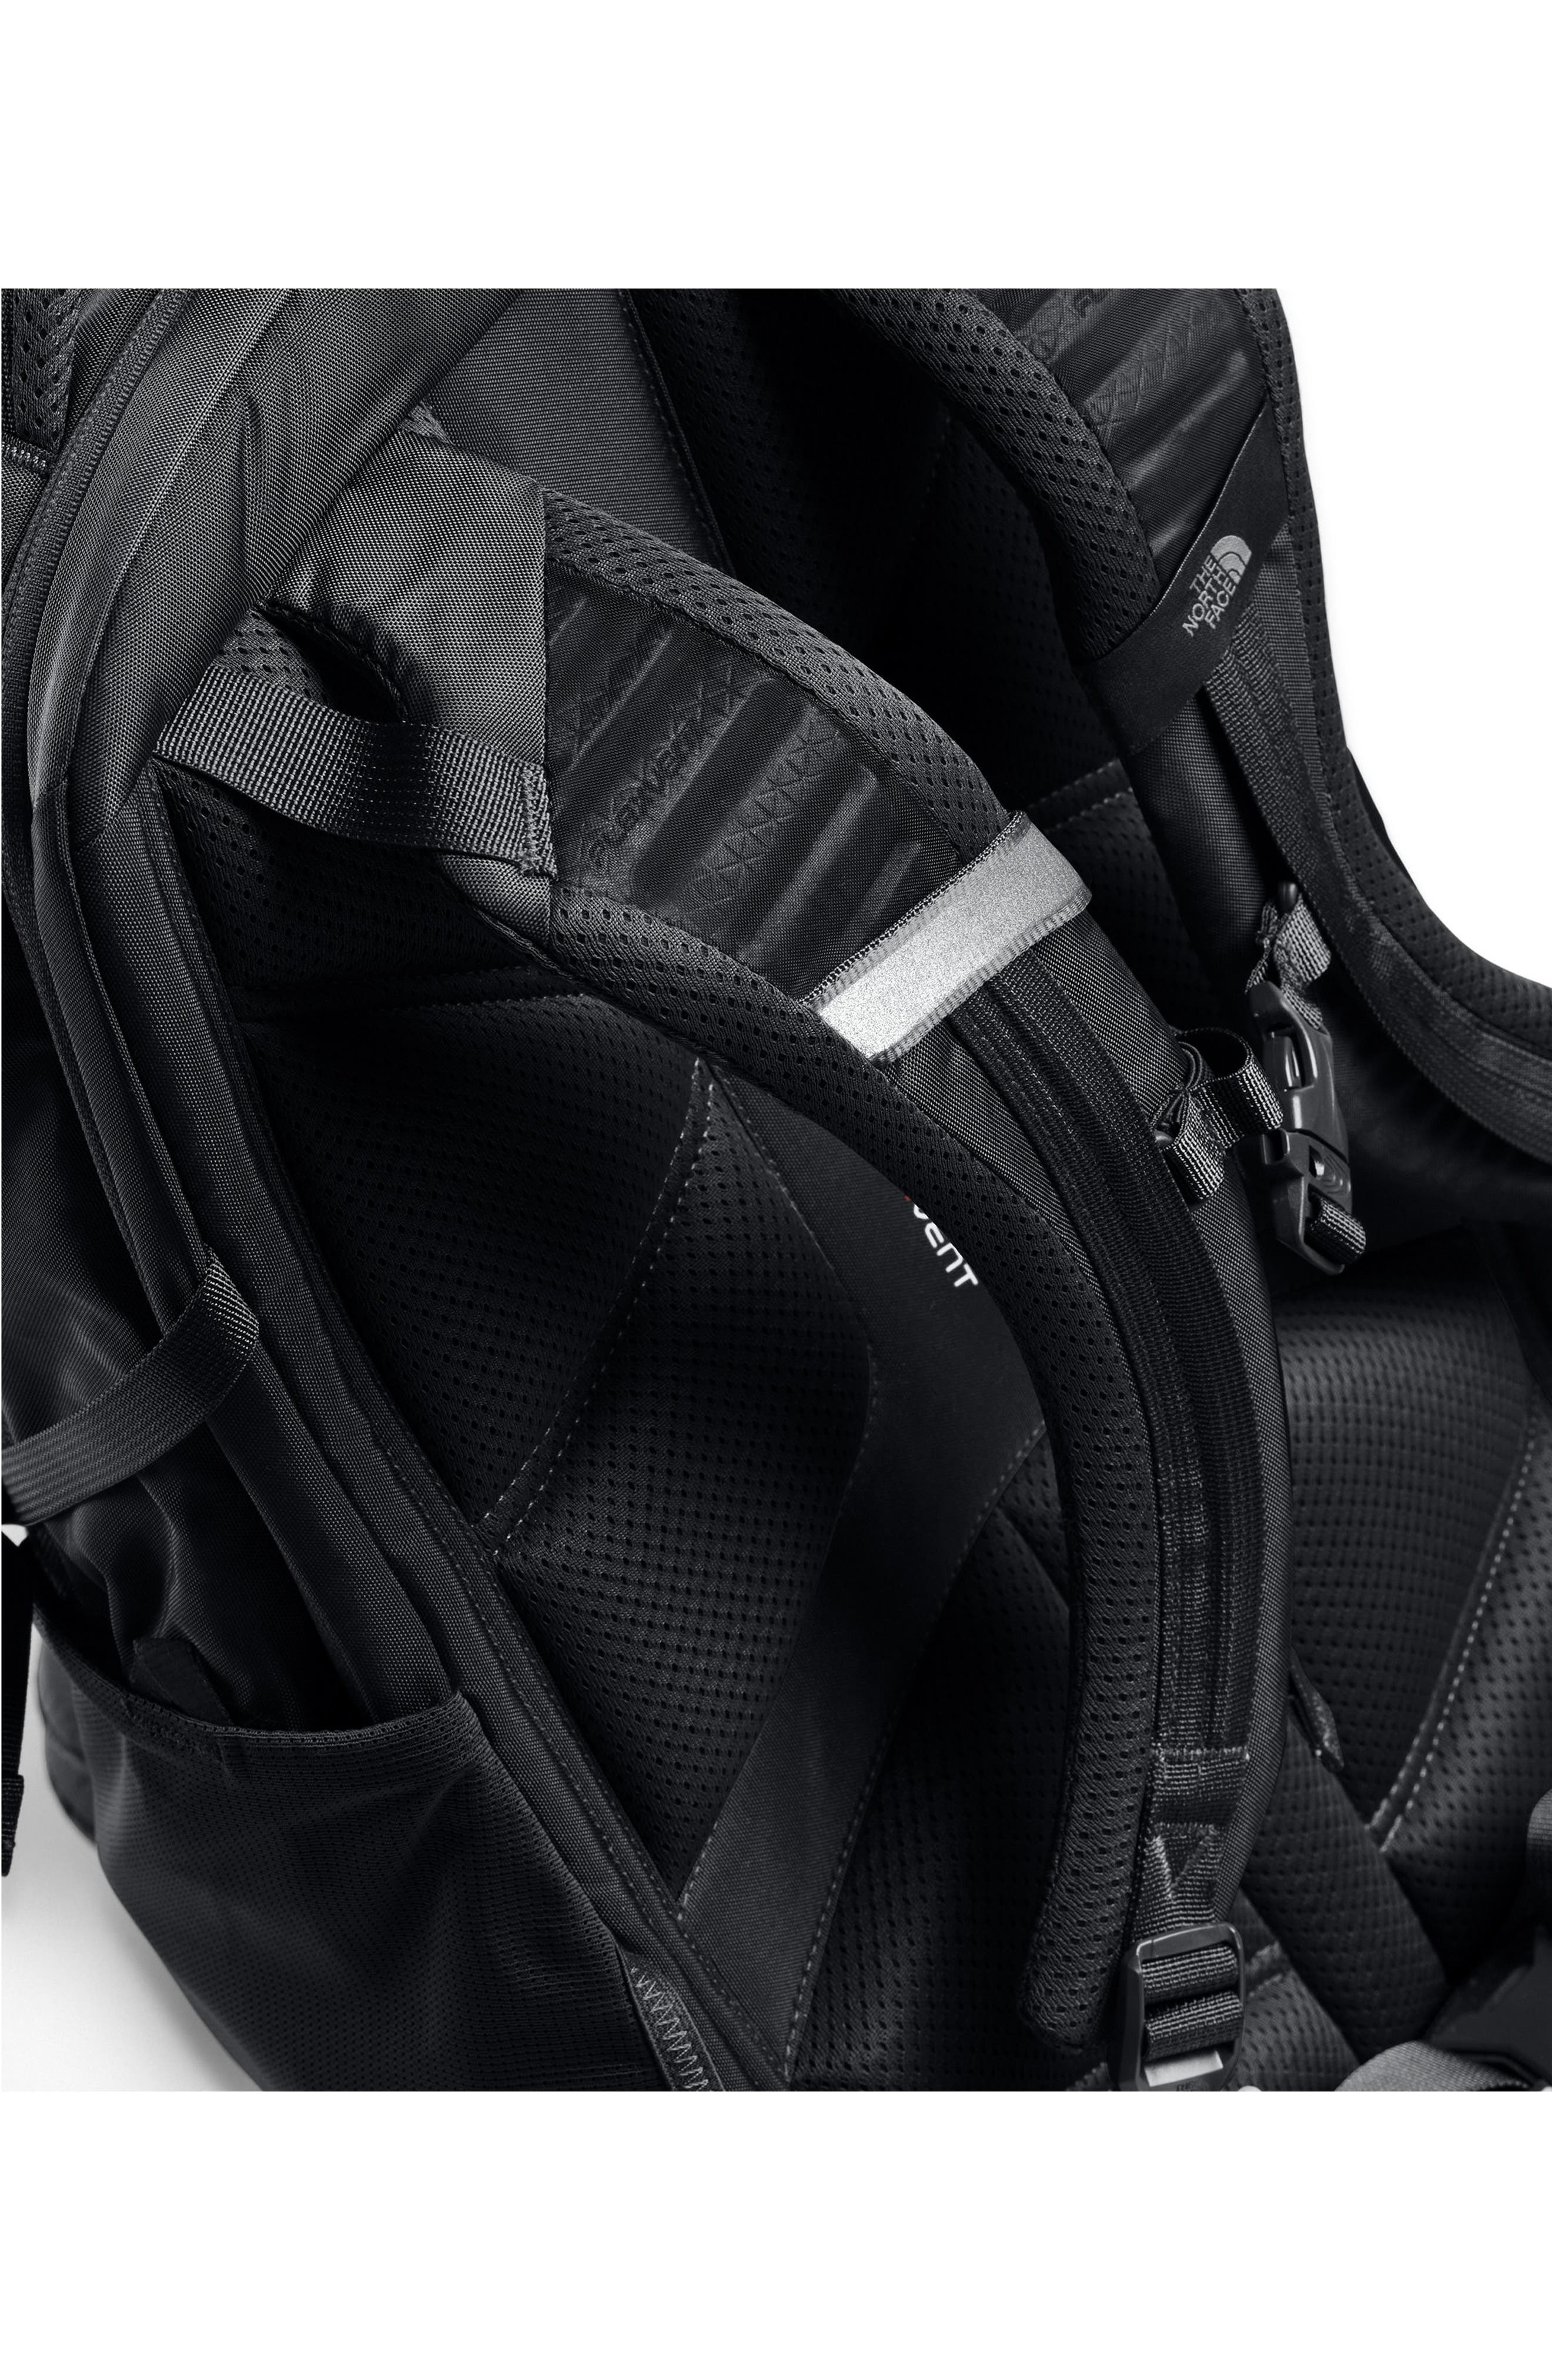 THE NORTH FACE, Recon Backpack, Alternate thumbnail 7, color, TNF BLACK